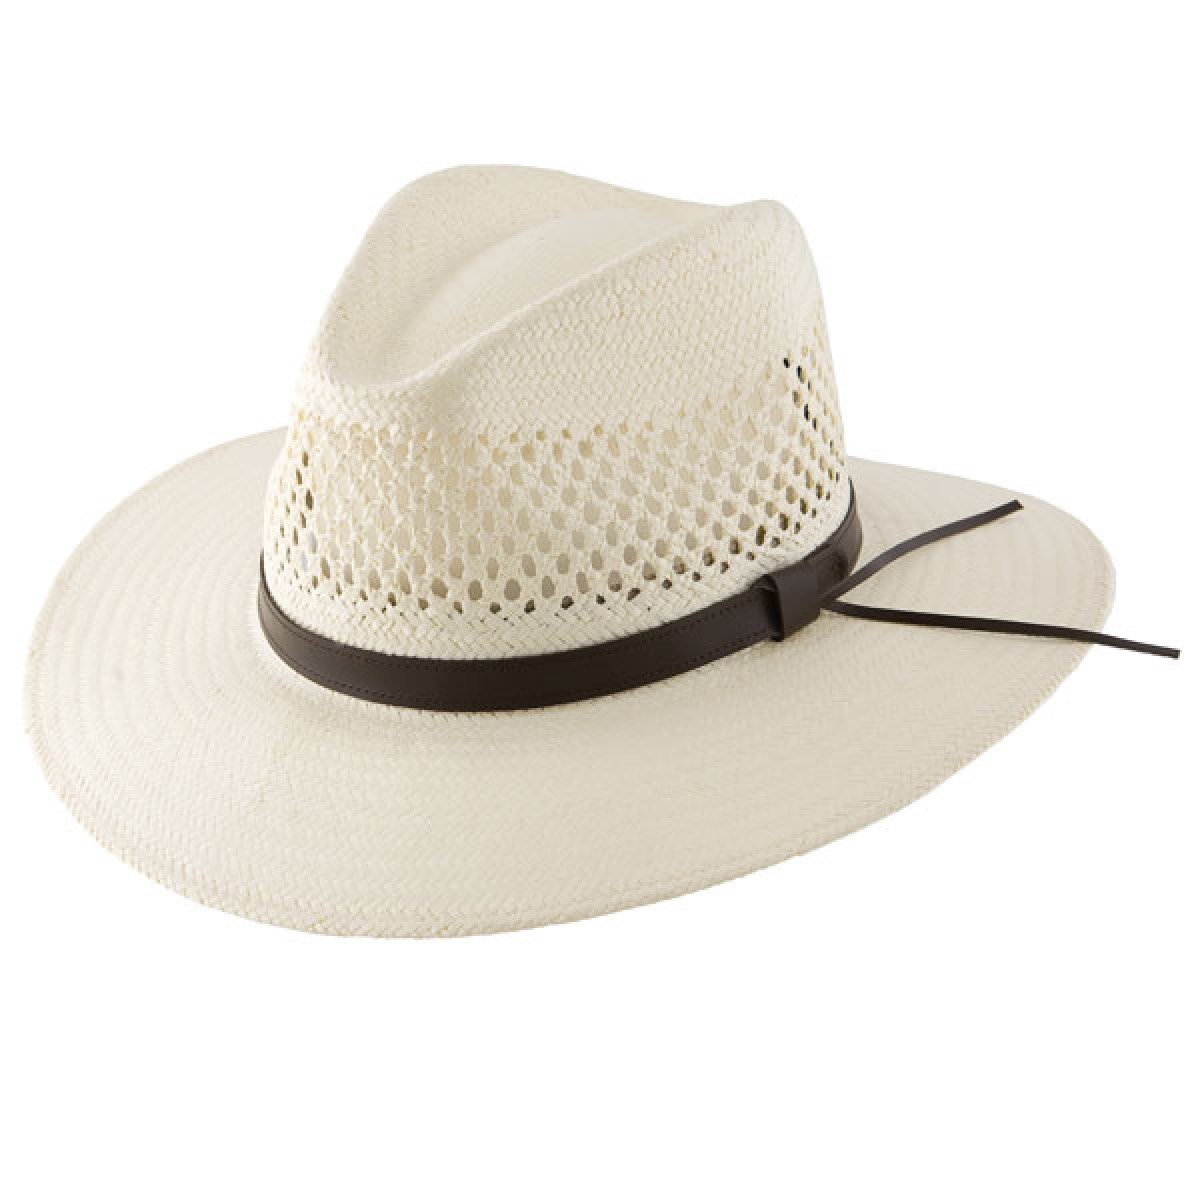 New Arrival - The Stetson Digger Shantung Straw Hat